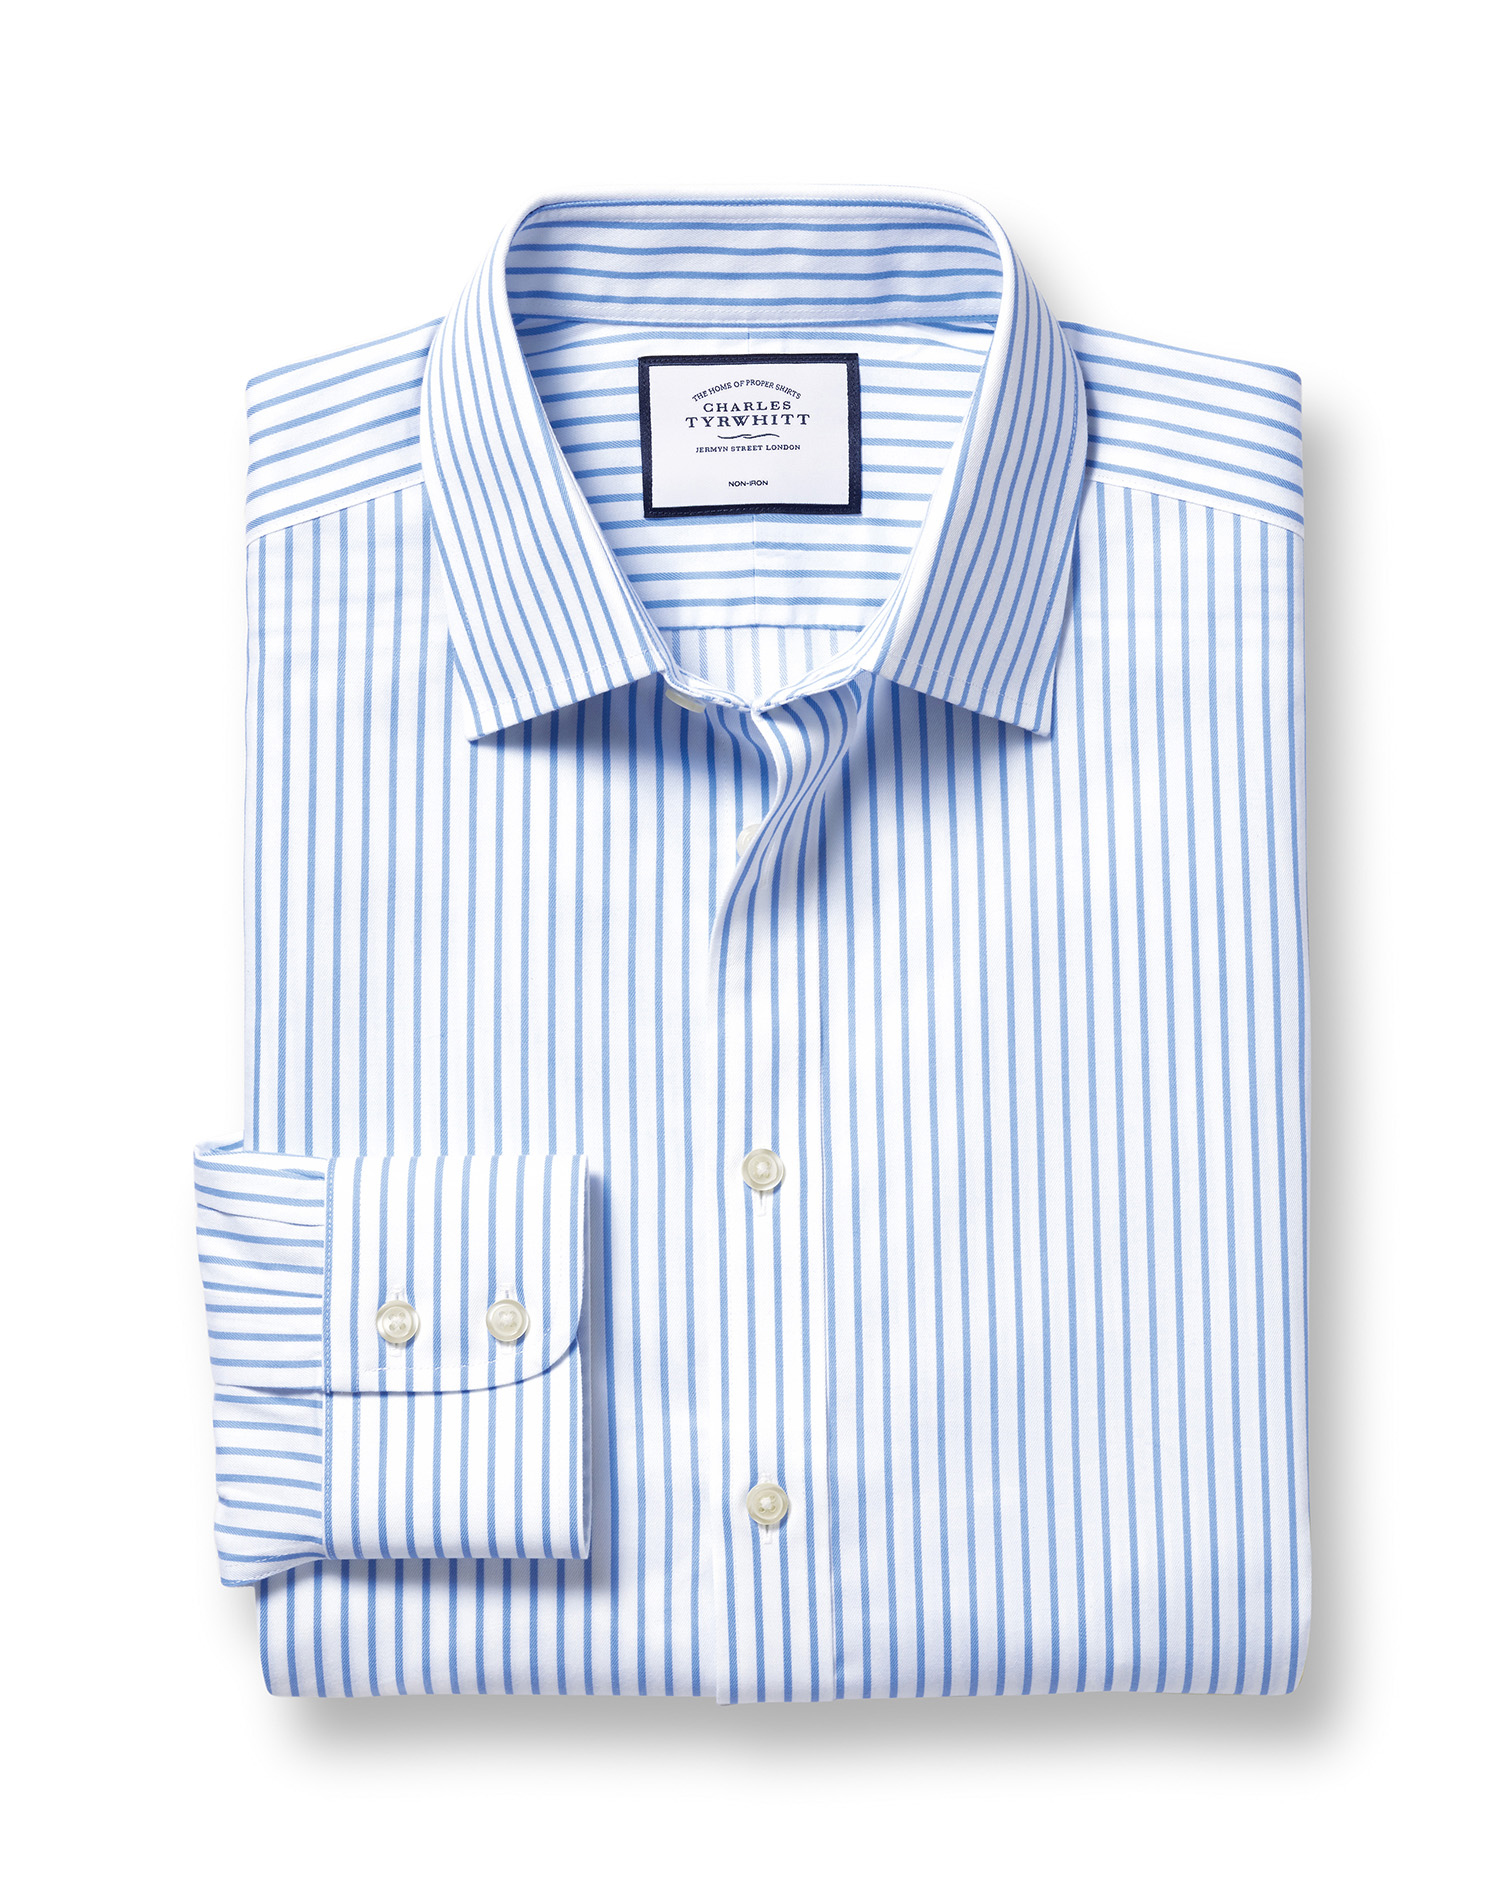 Extra Slim Fit Non-Iron Twill White and Sky Blue Stripe Cotton Formal Shirt Double Cuff Size 15.5/35